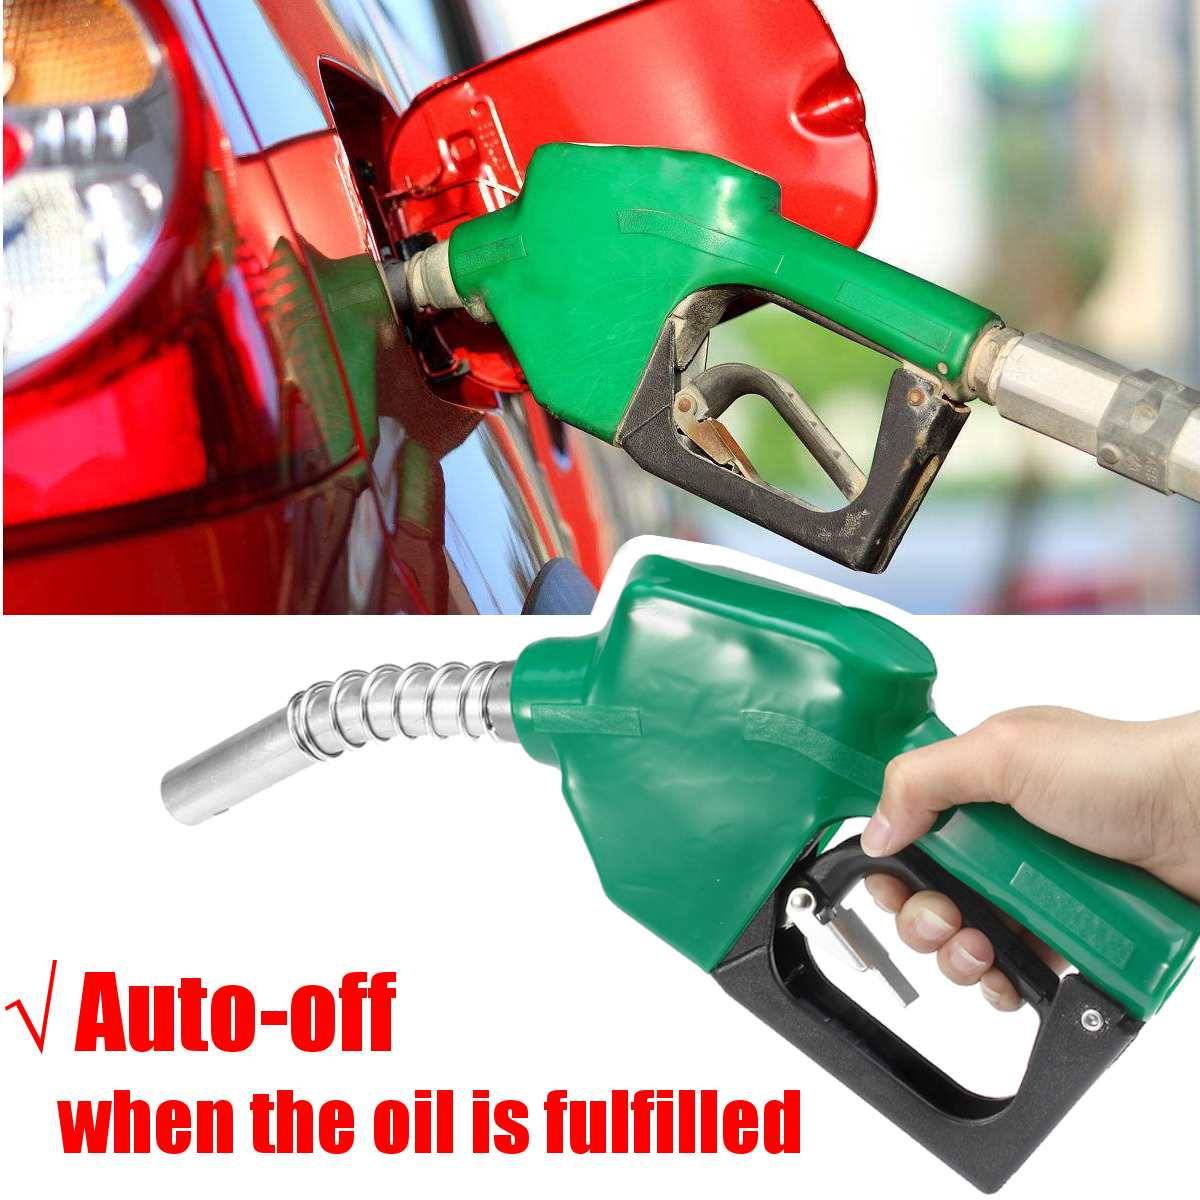 Stainless Steel Refilling Nozzle Gun Automatic Cut Off Fuel Refilling Nozzle Diesel Oil Dispensing Tool Oil Water Refueling Gun